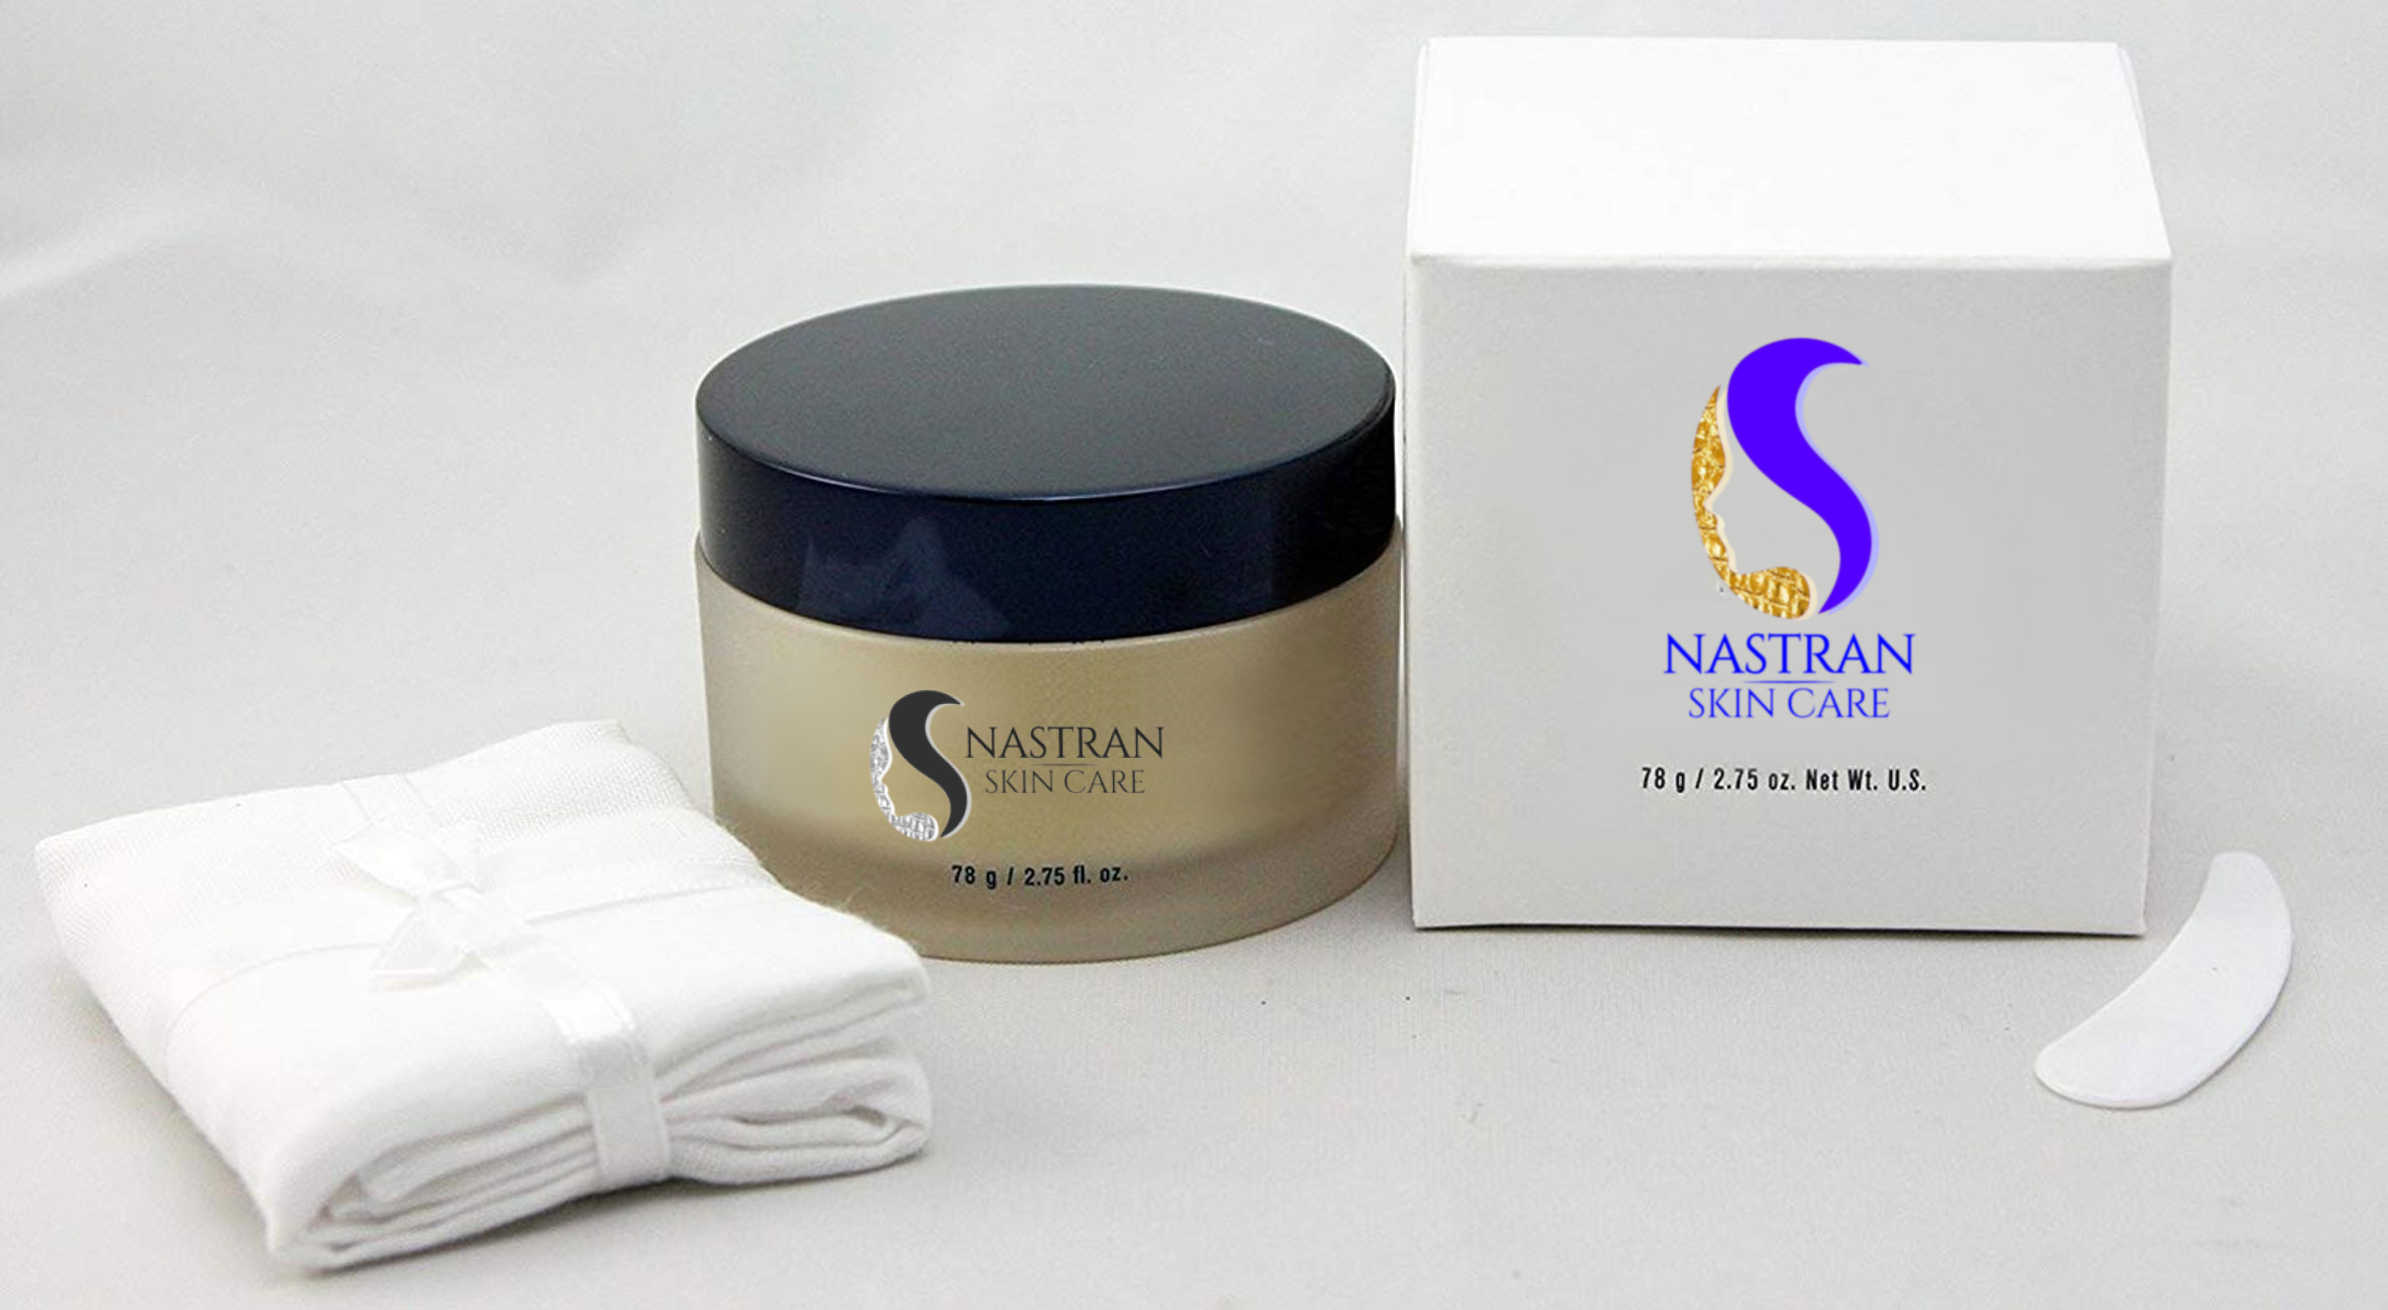 Good Beauty Products by Nastran Skin Care